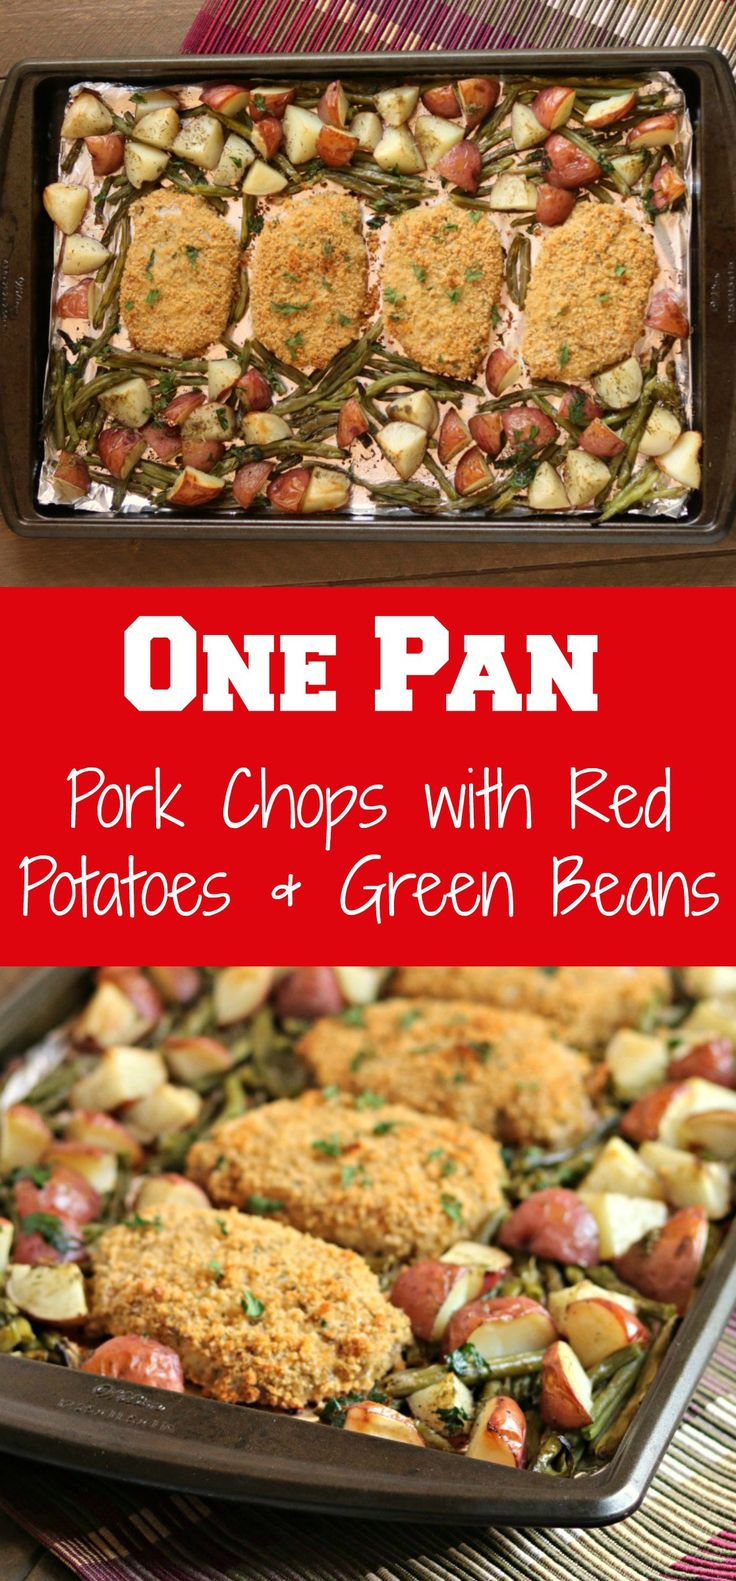 one pan pork chops with red potatoes & green beans #ad via www.chocolateslopes.com